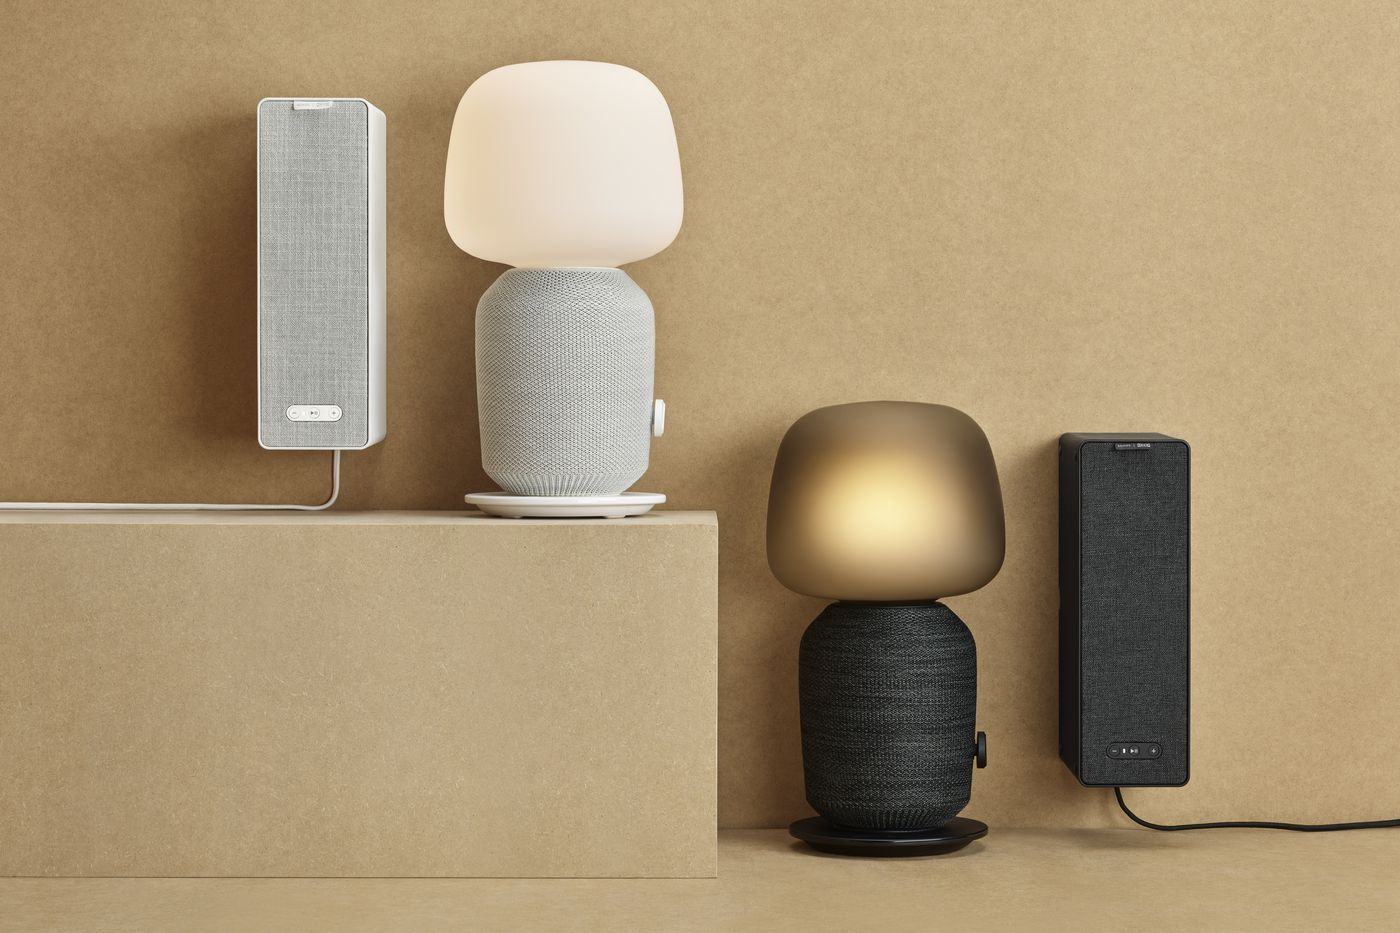 IKEA's Sonos range of speakers, coming soon to Thailand